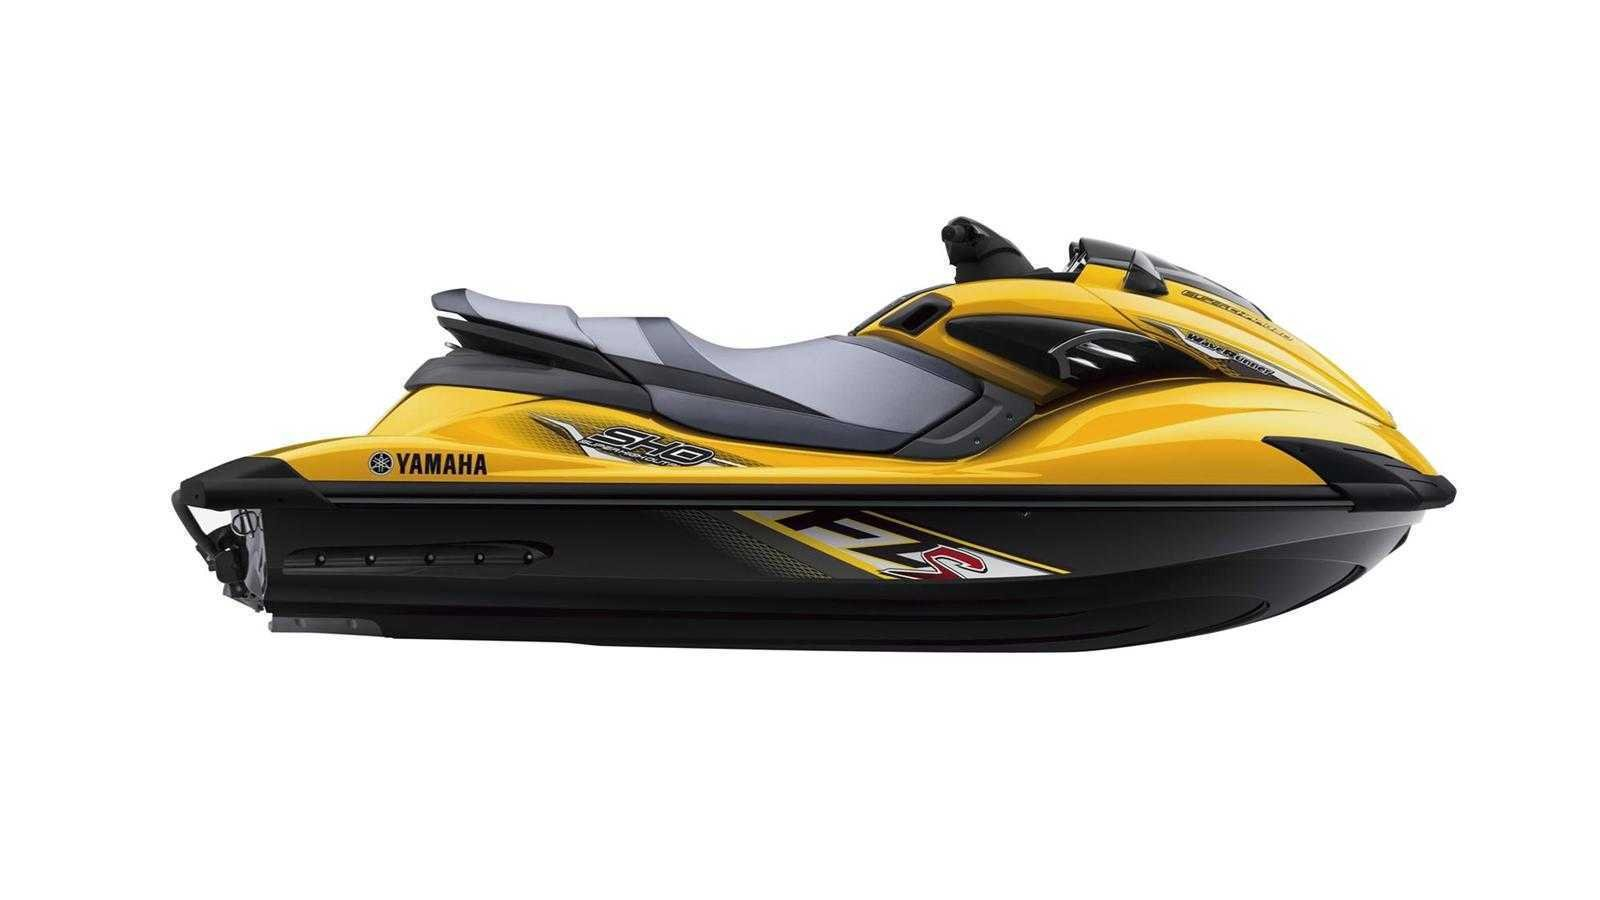 Yamaha Jet Ski Top Speed